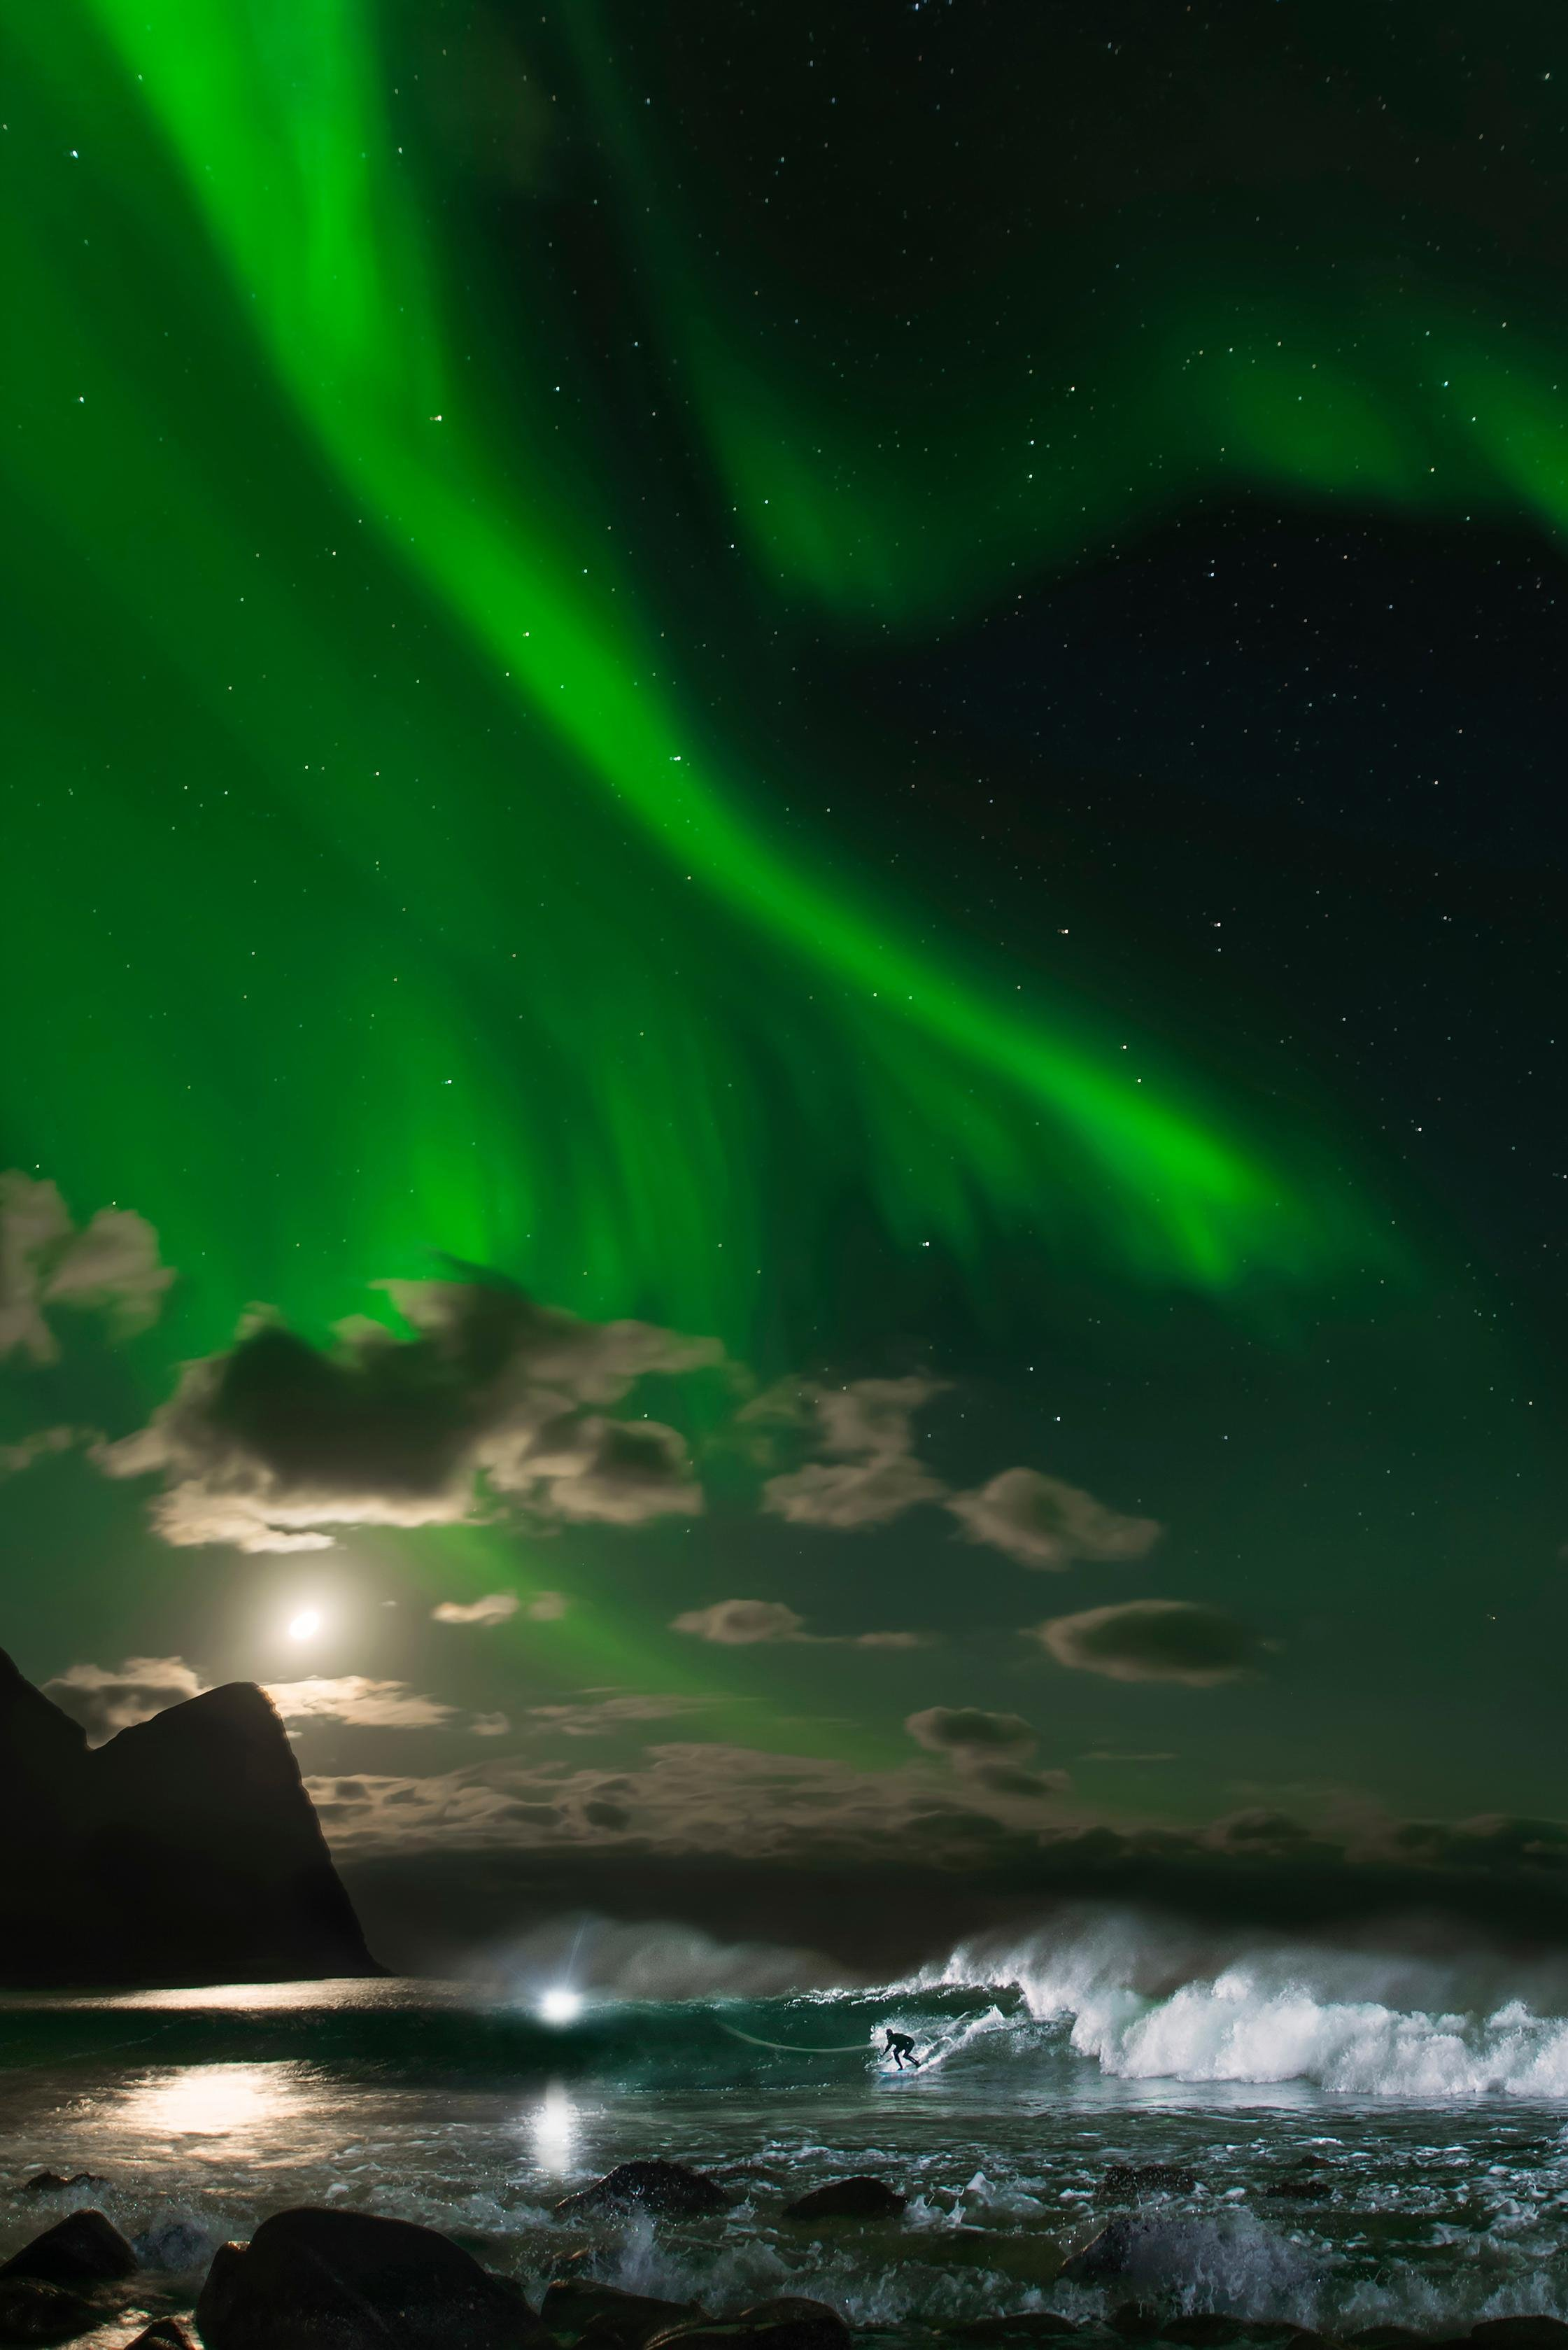 mick-fanning-surfing-under-northern-lights-lofoten-norway.jpg